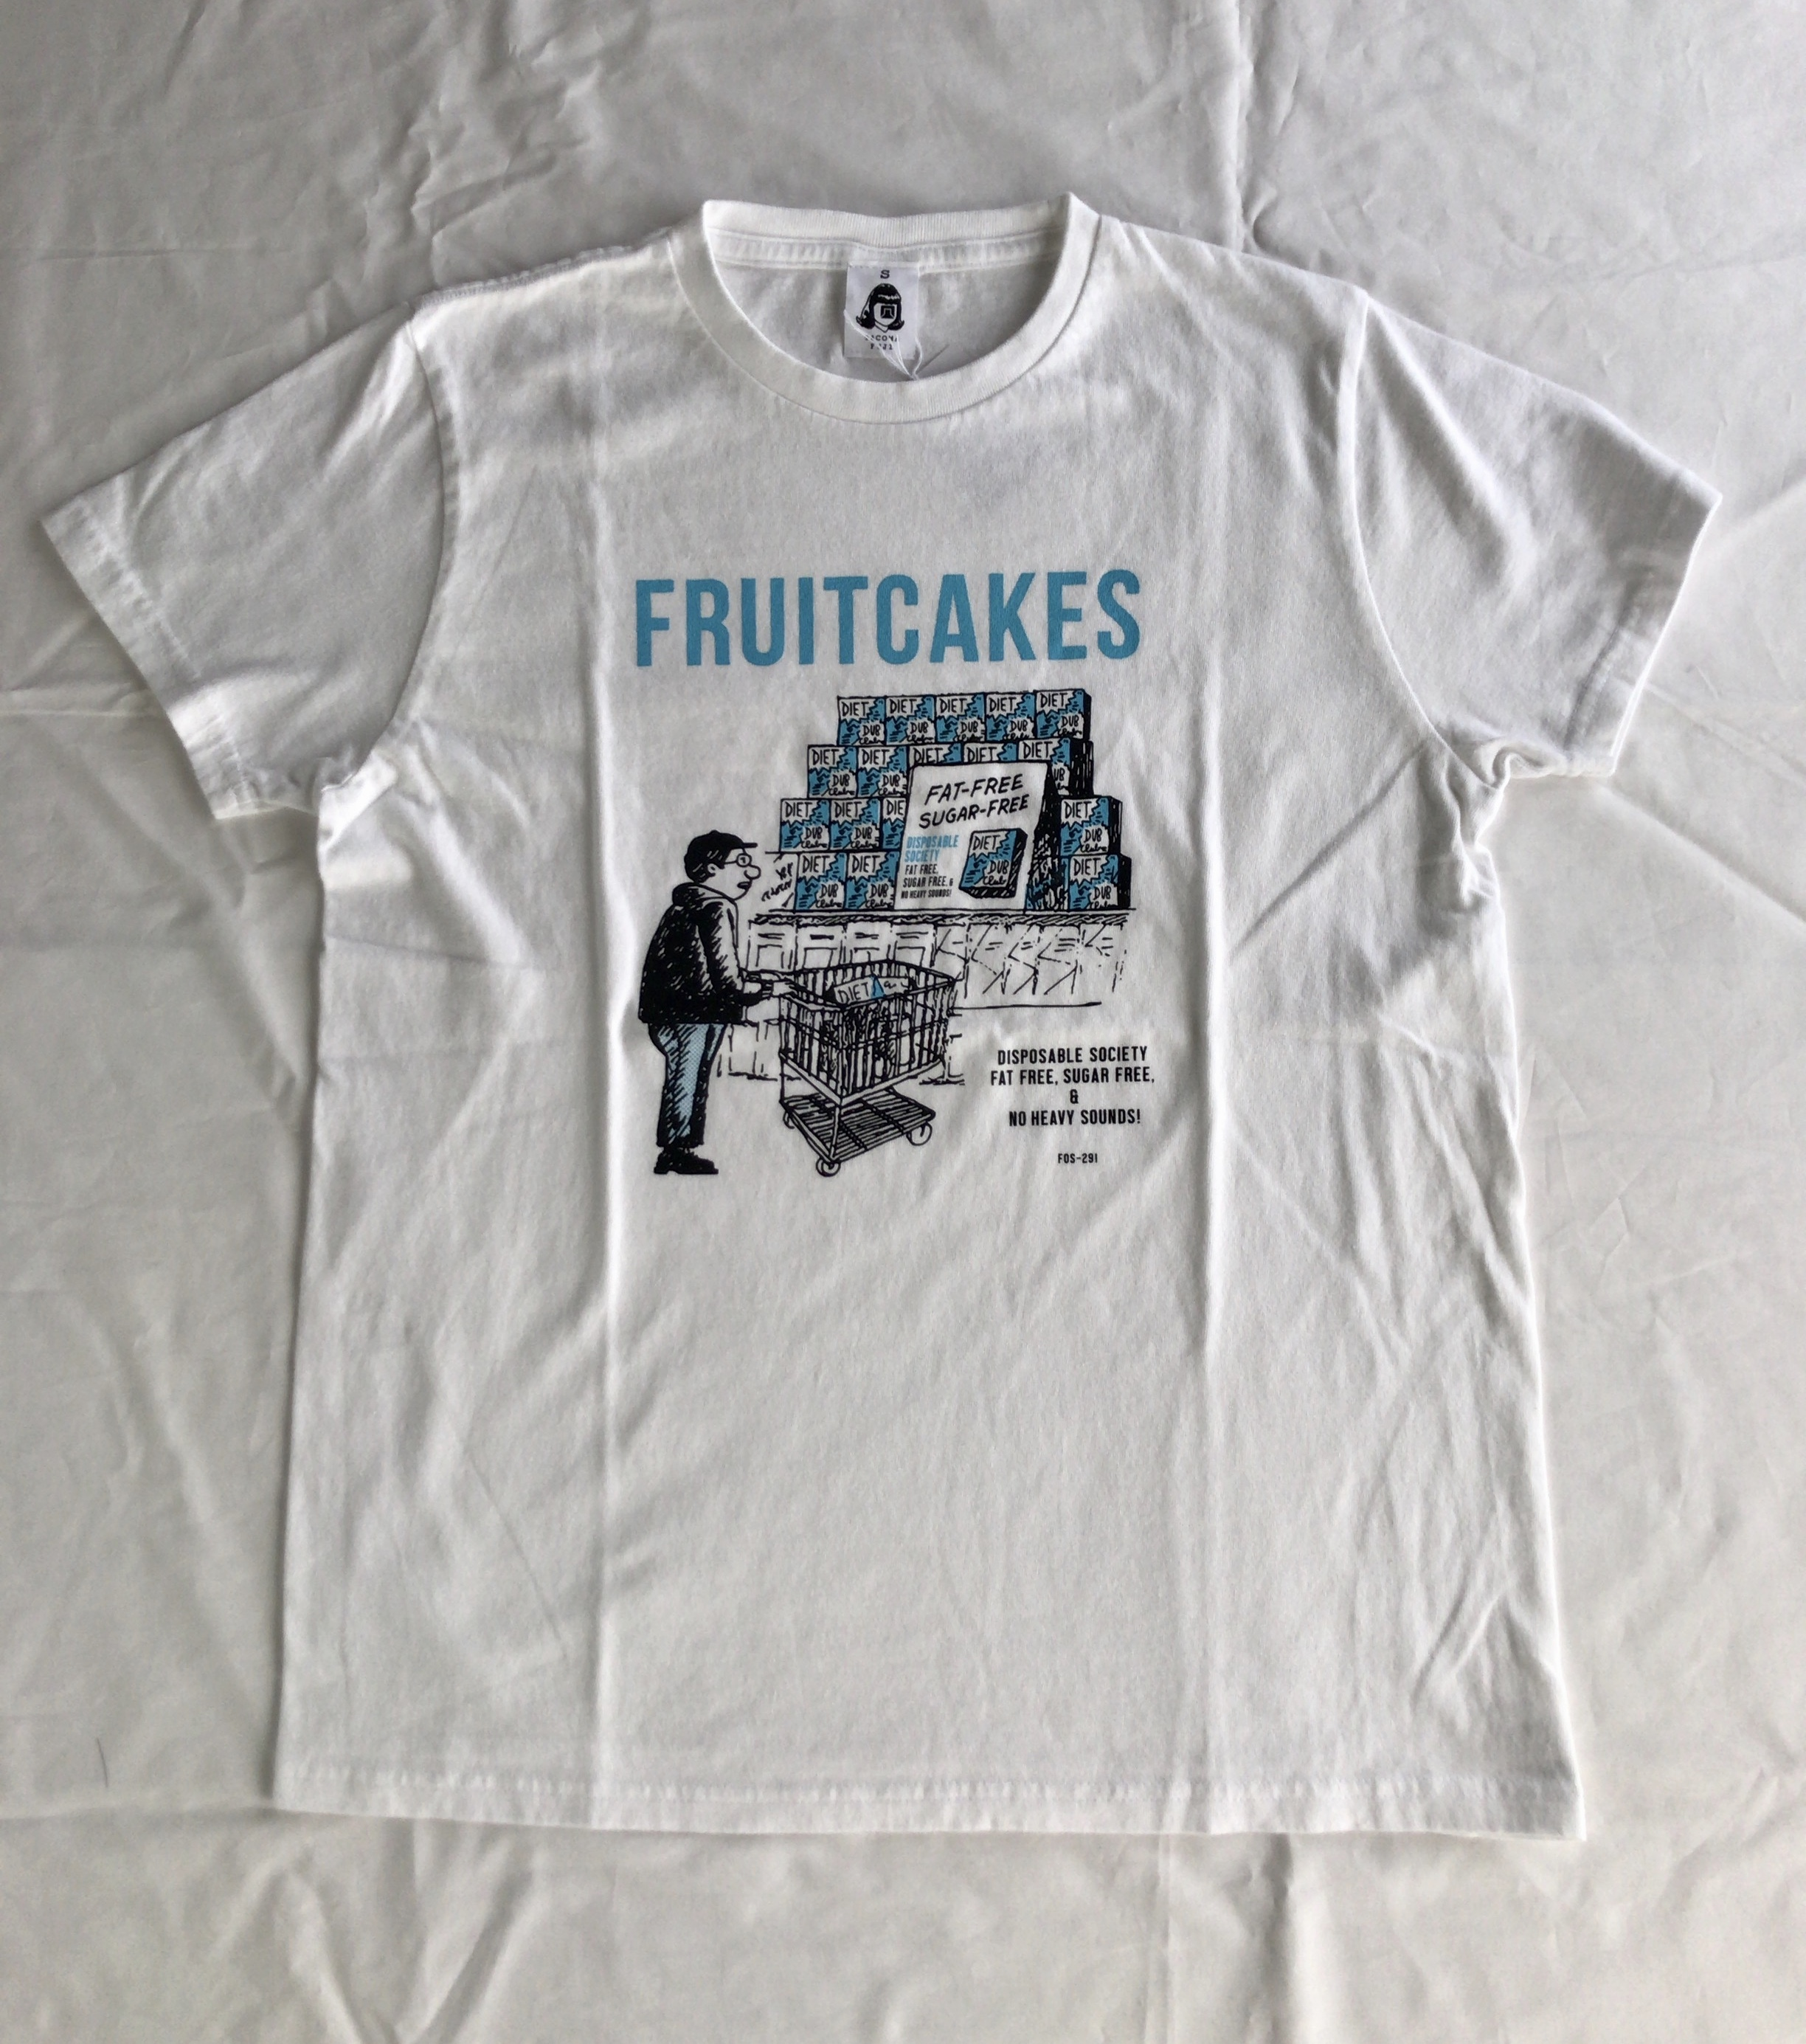 TACOMA FUJI RECORDS FRUITCAKES / DUB DIET CLUB  designed by Jerry UKAI  WHITE